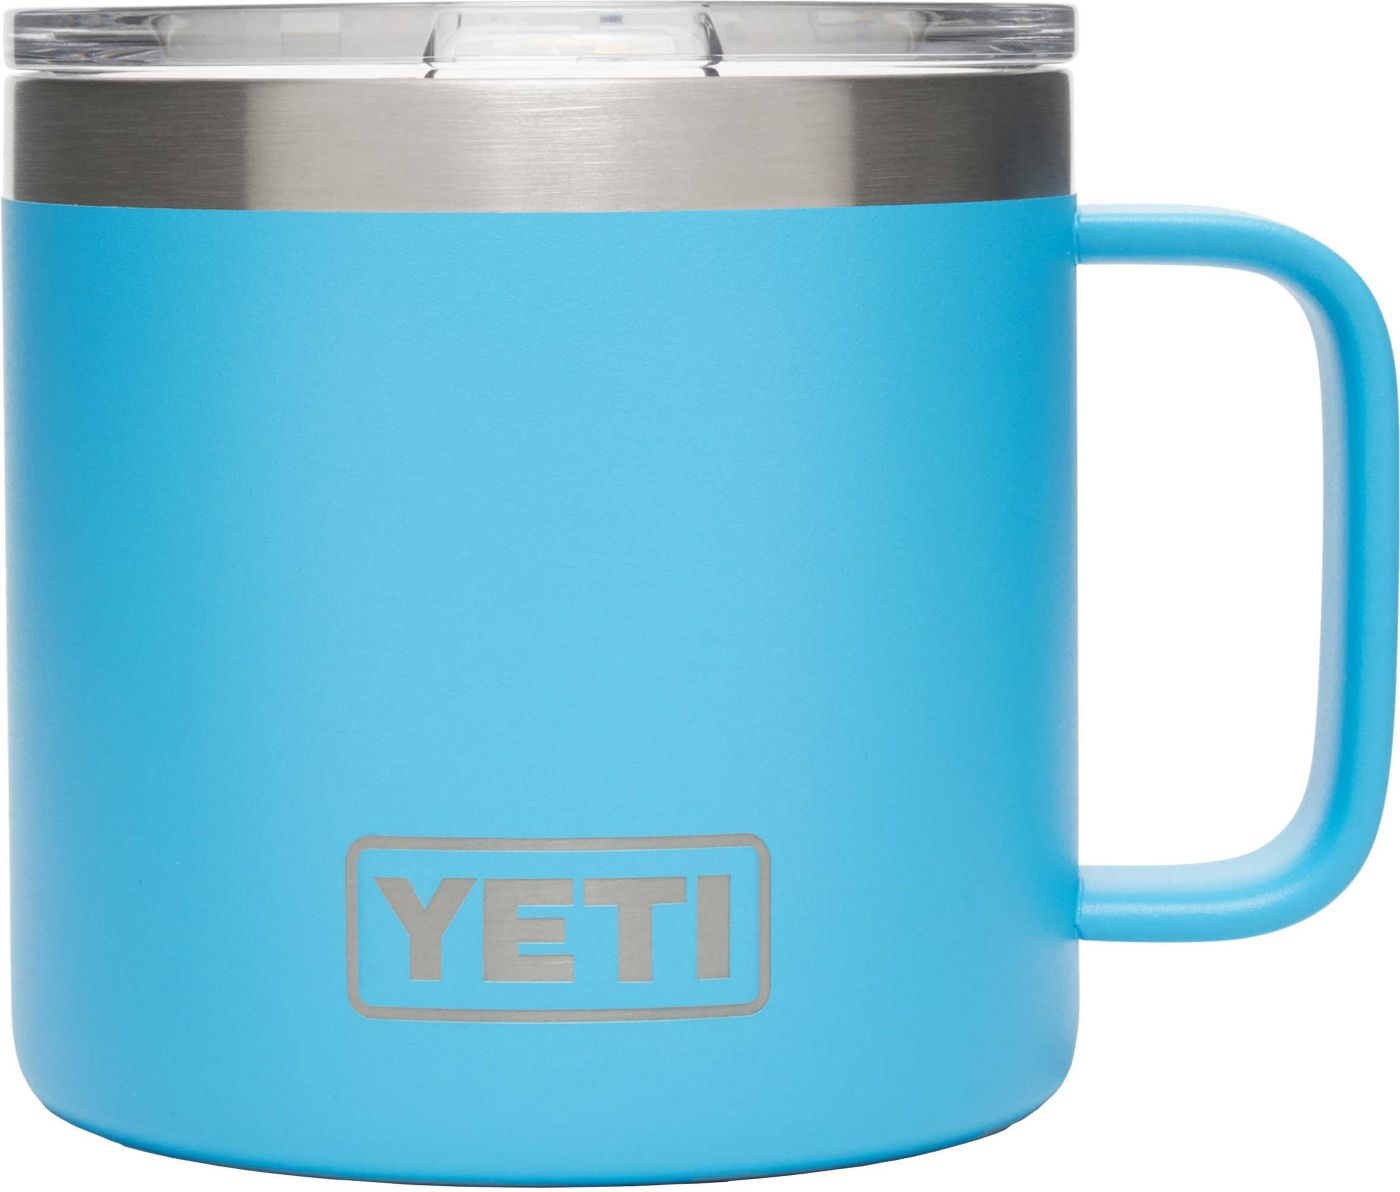 Yeti Mug - Great Grab Bag or Hostess Gift